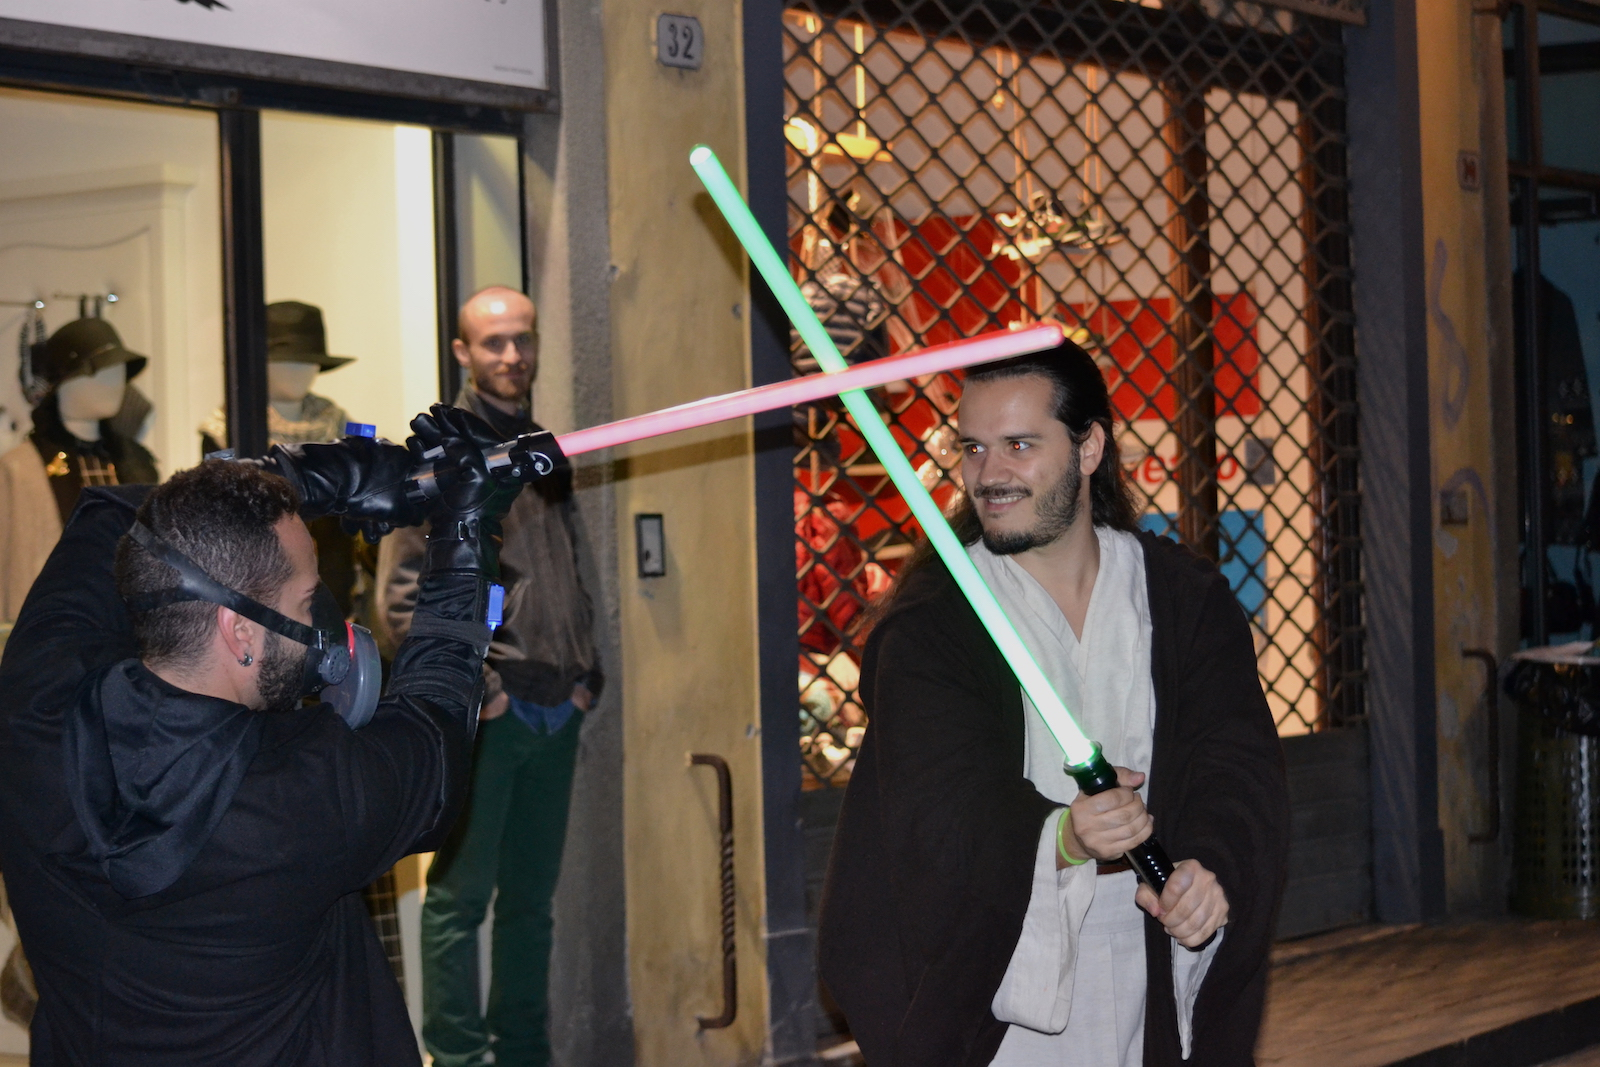 Lucca 2015: due cosplyer di Star Wars